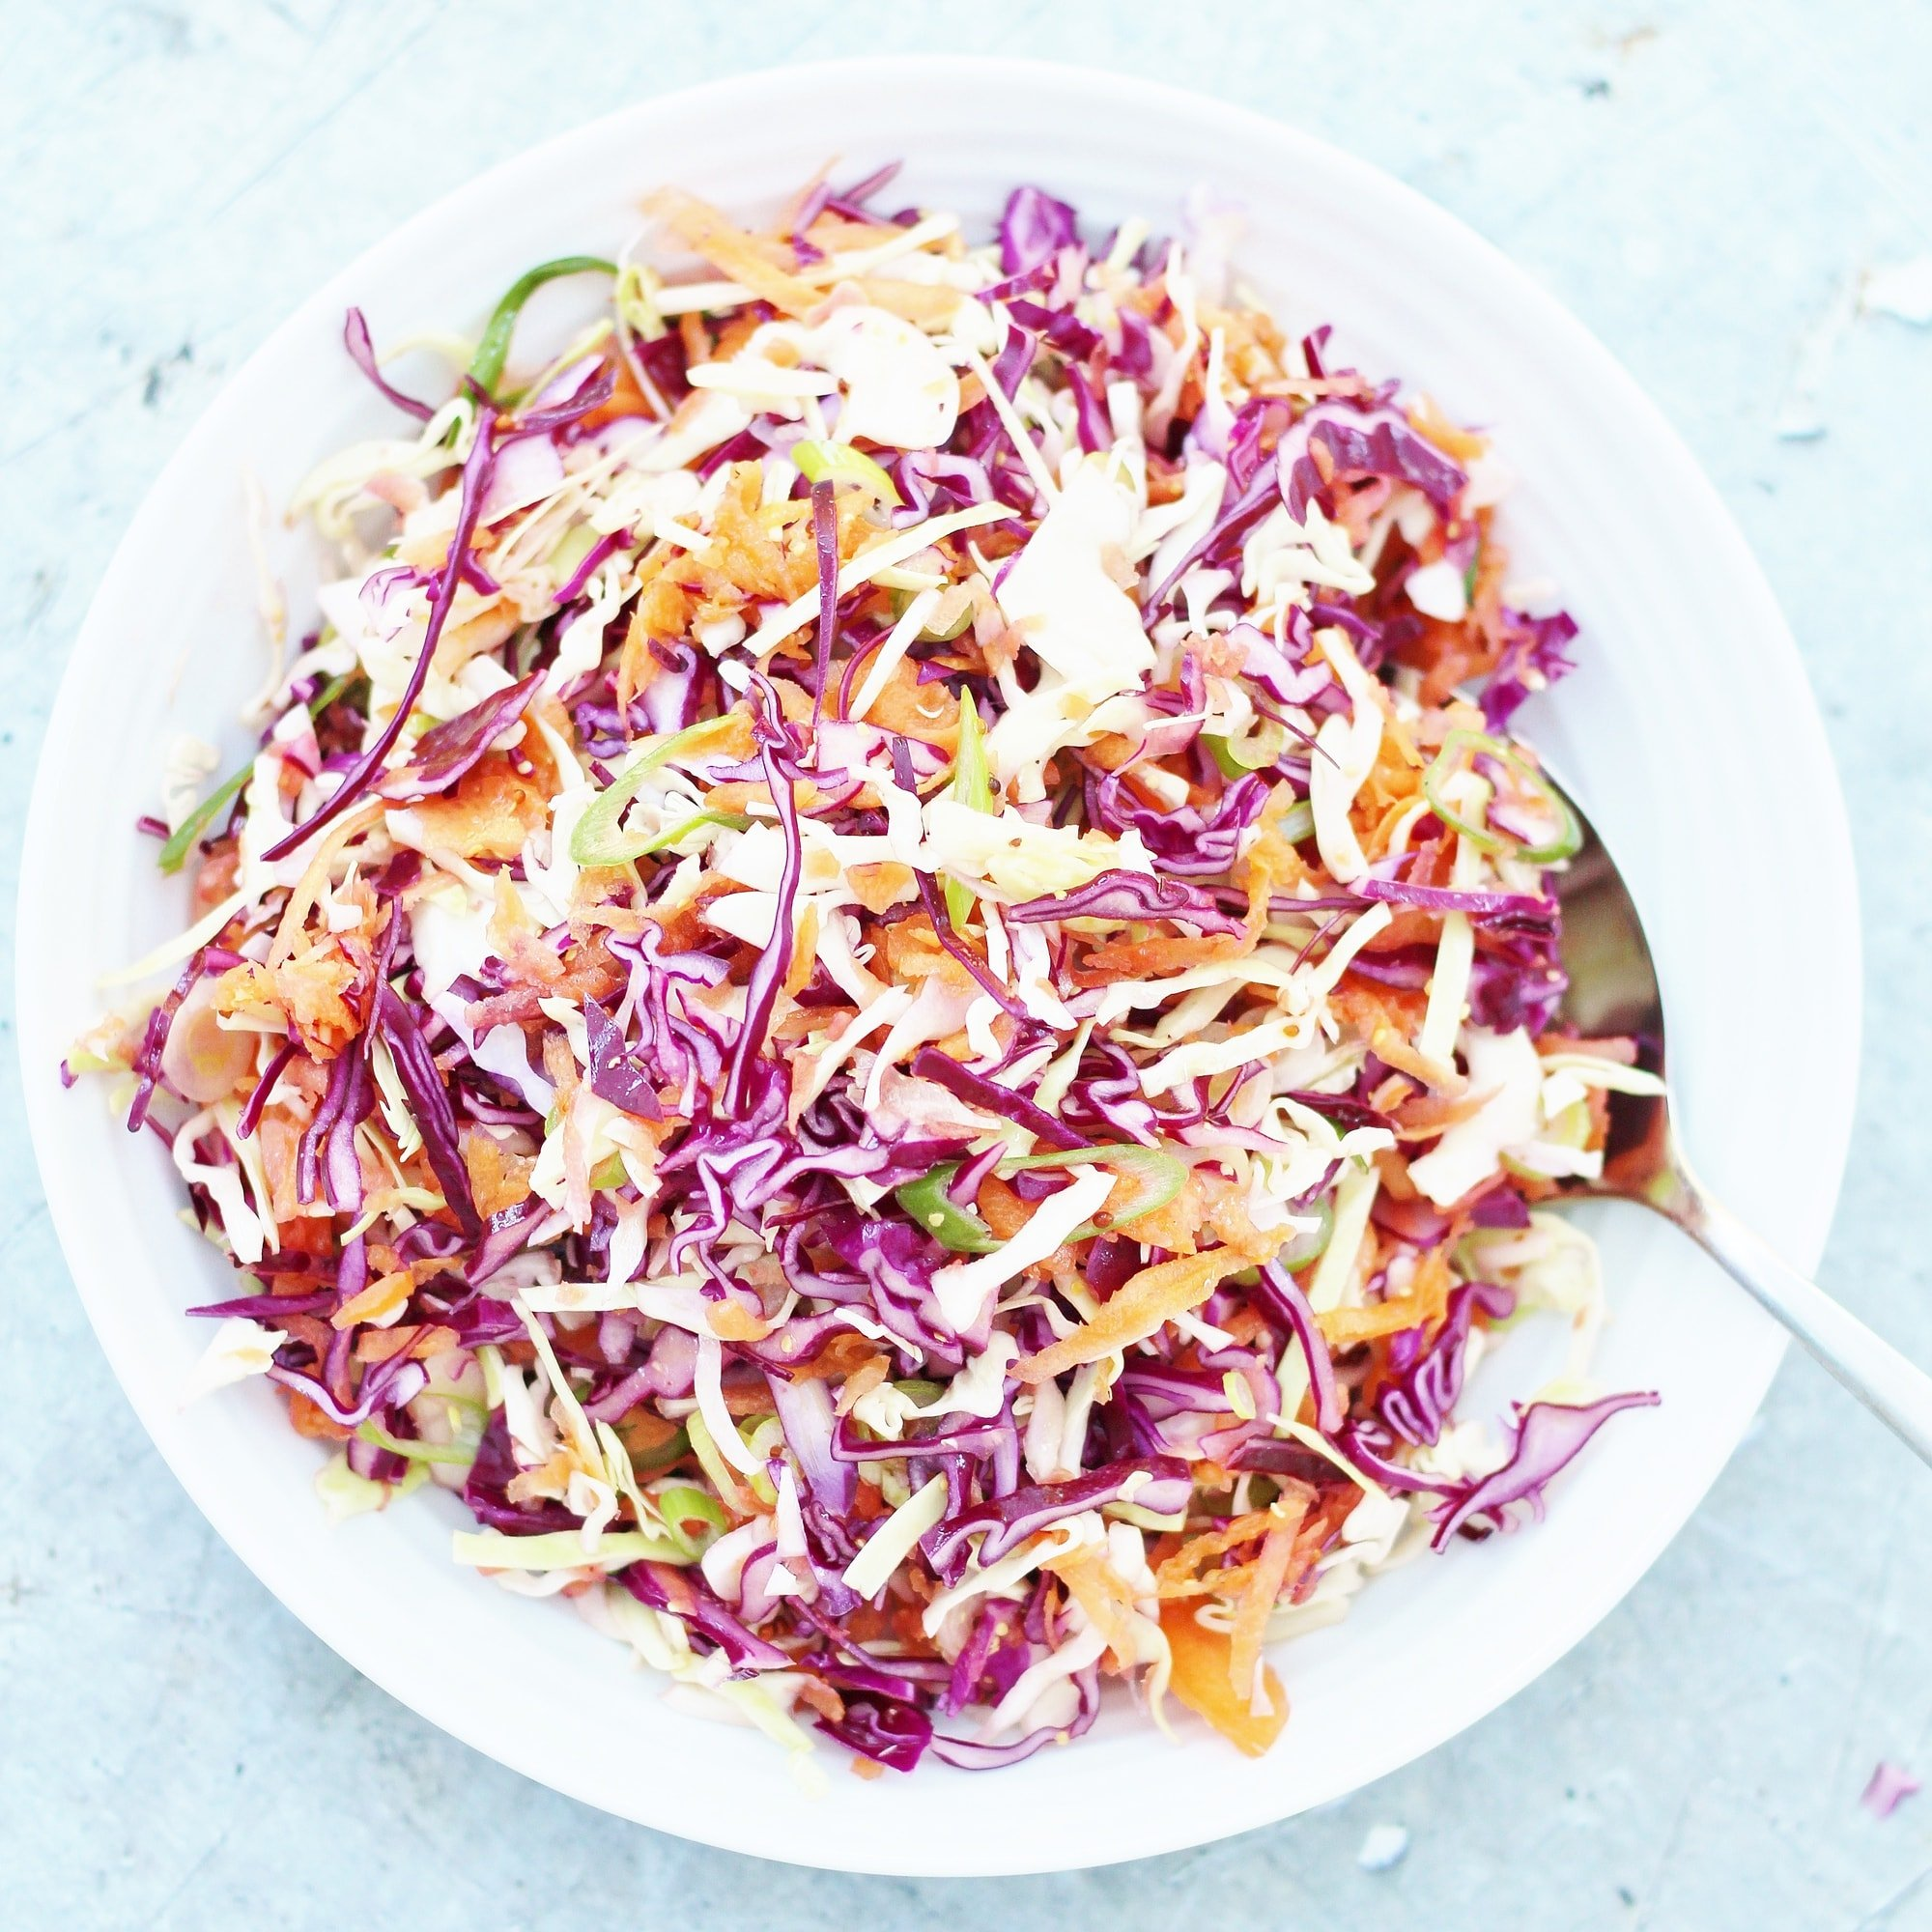 Easy No Mayo Coleslaw Dairy Free Egg Free Vegan Easy Peasy Foodie